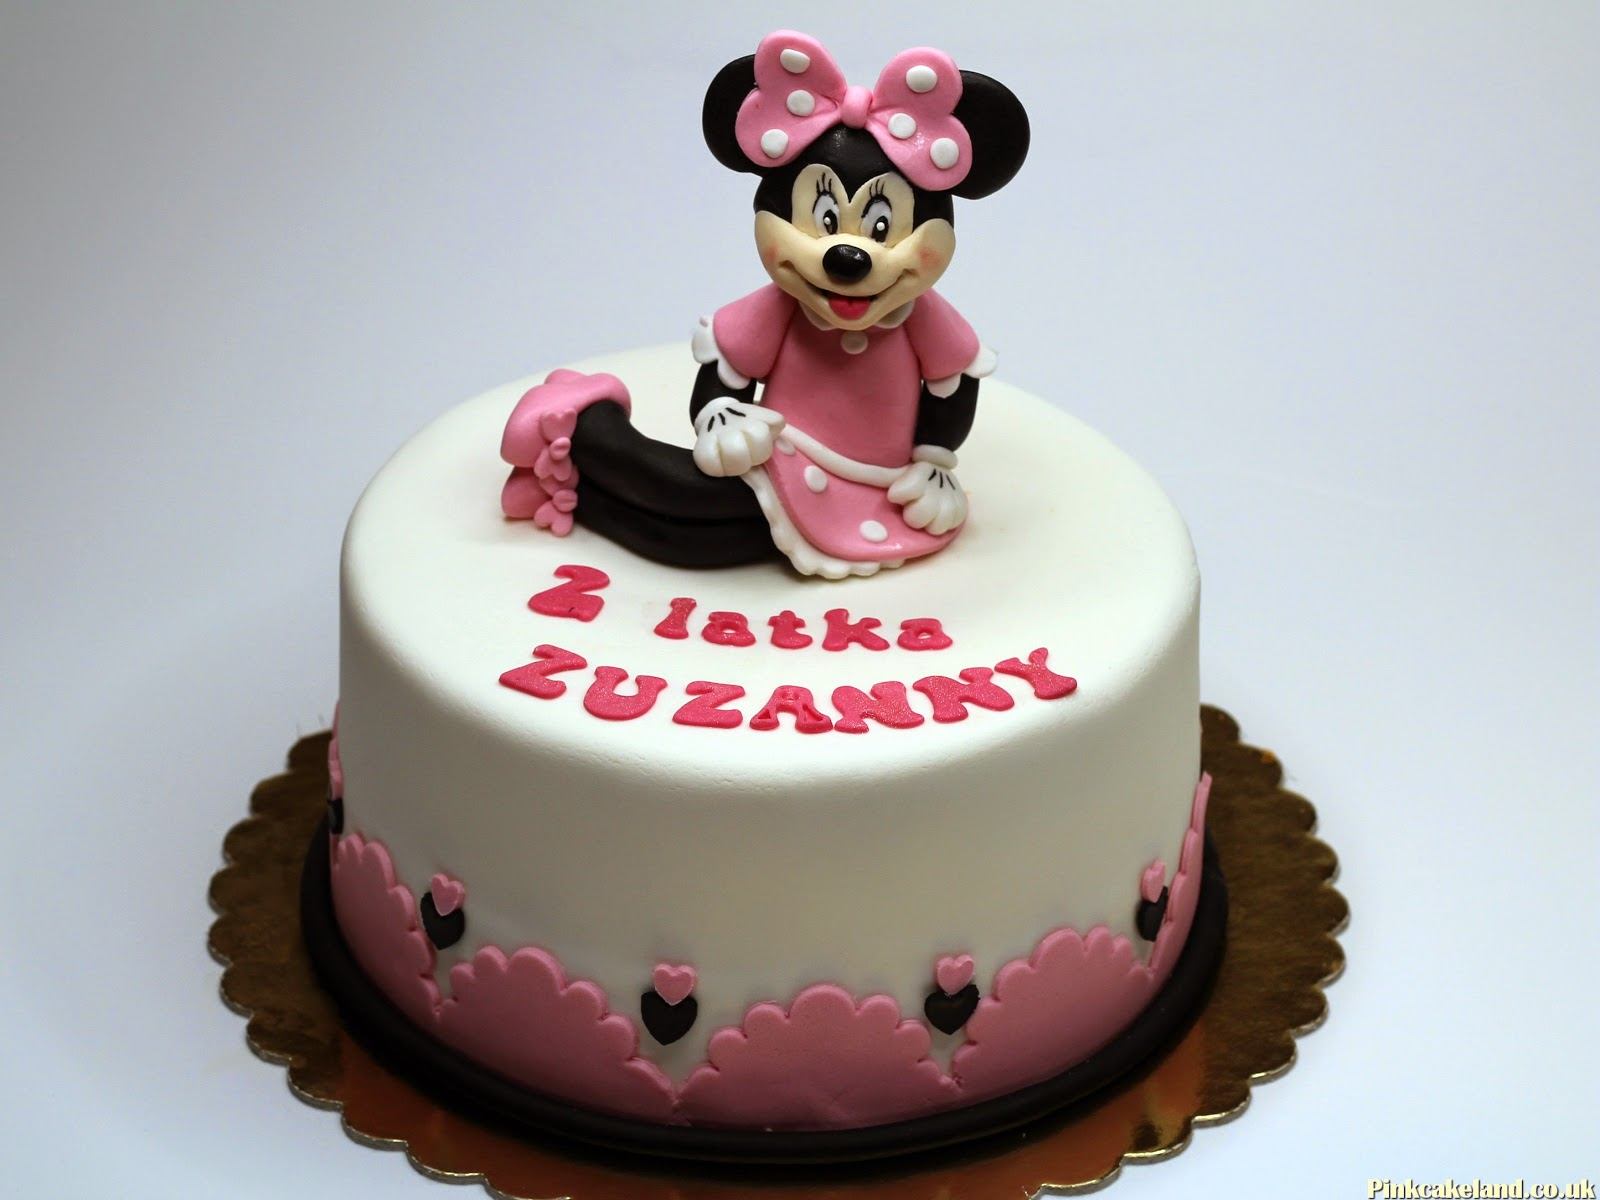 Minnie Mouse Cake, Kingston Upon Thames